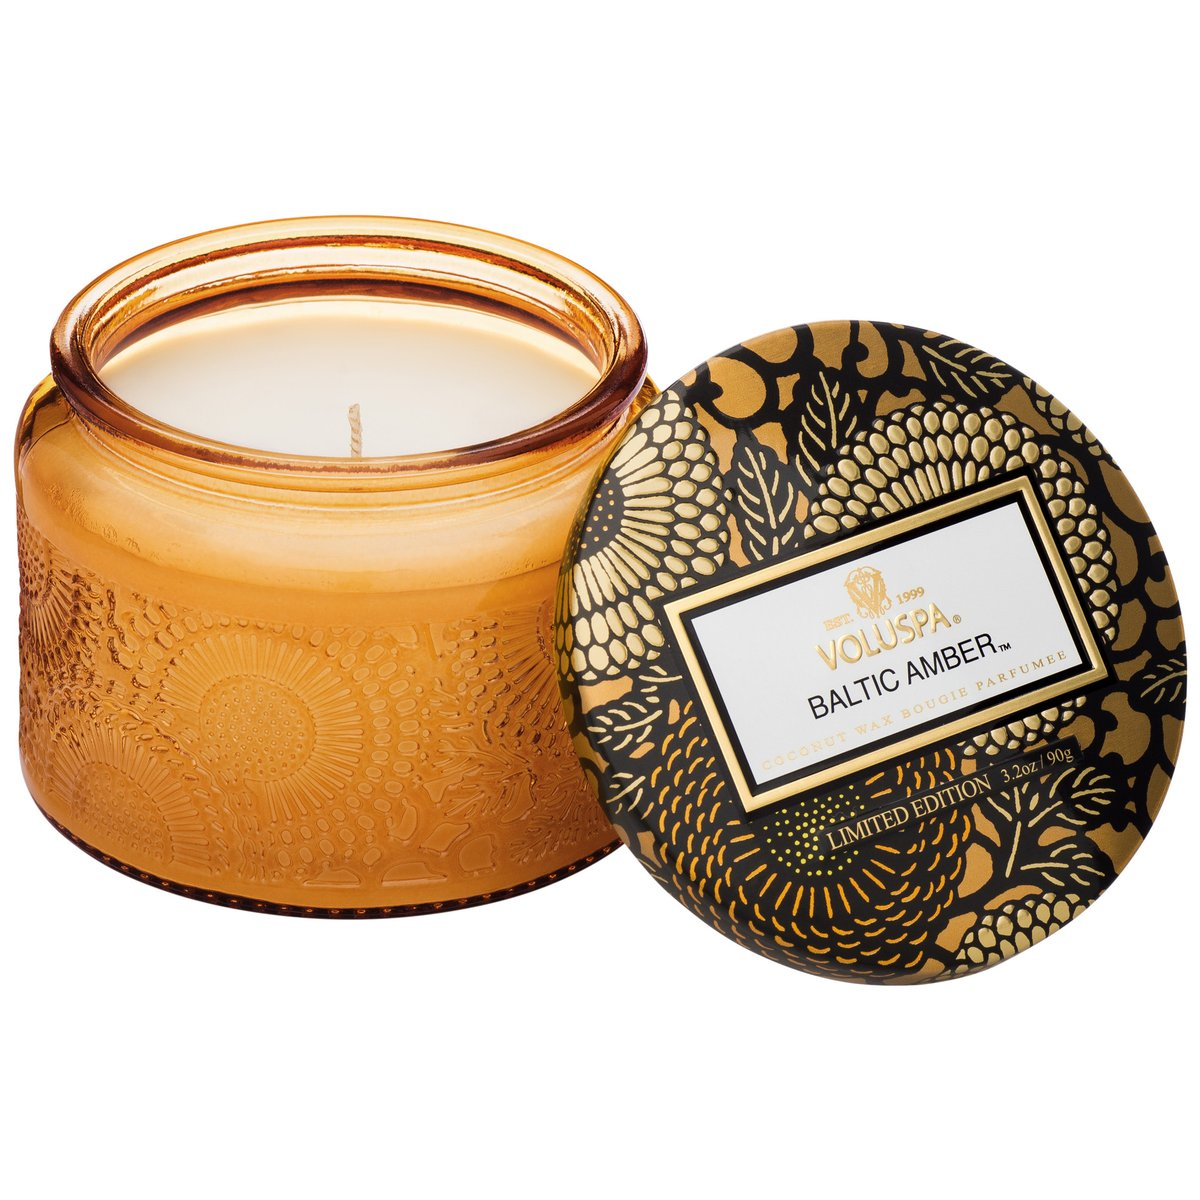 Notes of Amber Resin, Sandalwood & Vanilla Orchid. This embossed candle features a metallic lid, making it perfect for travel and smaller spaces.